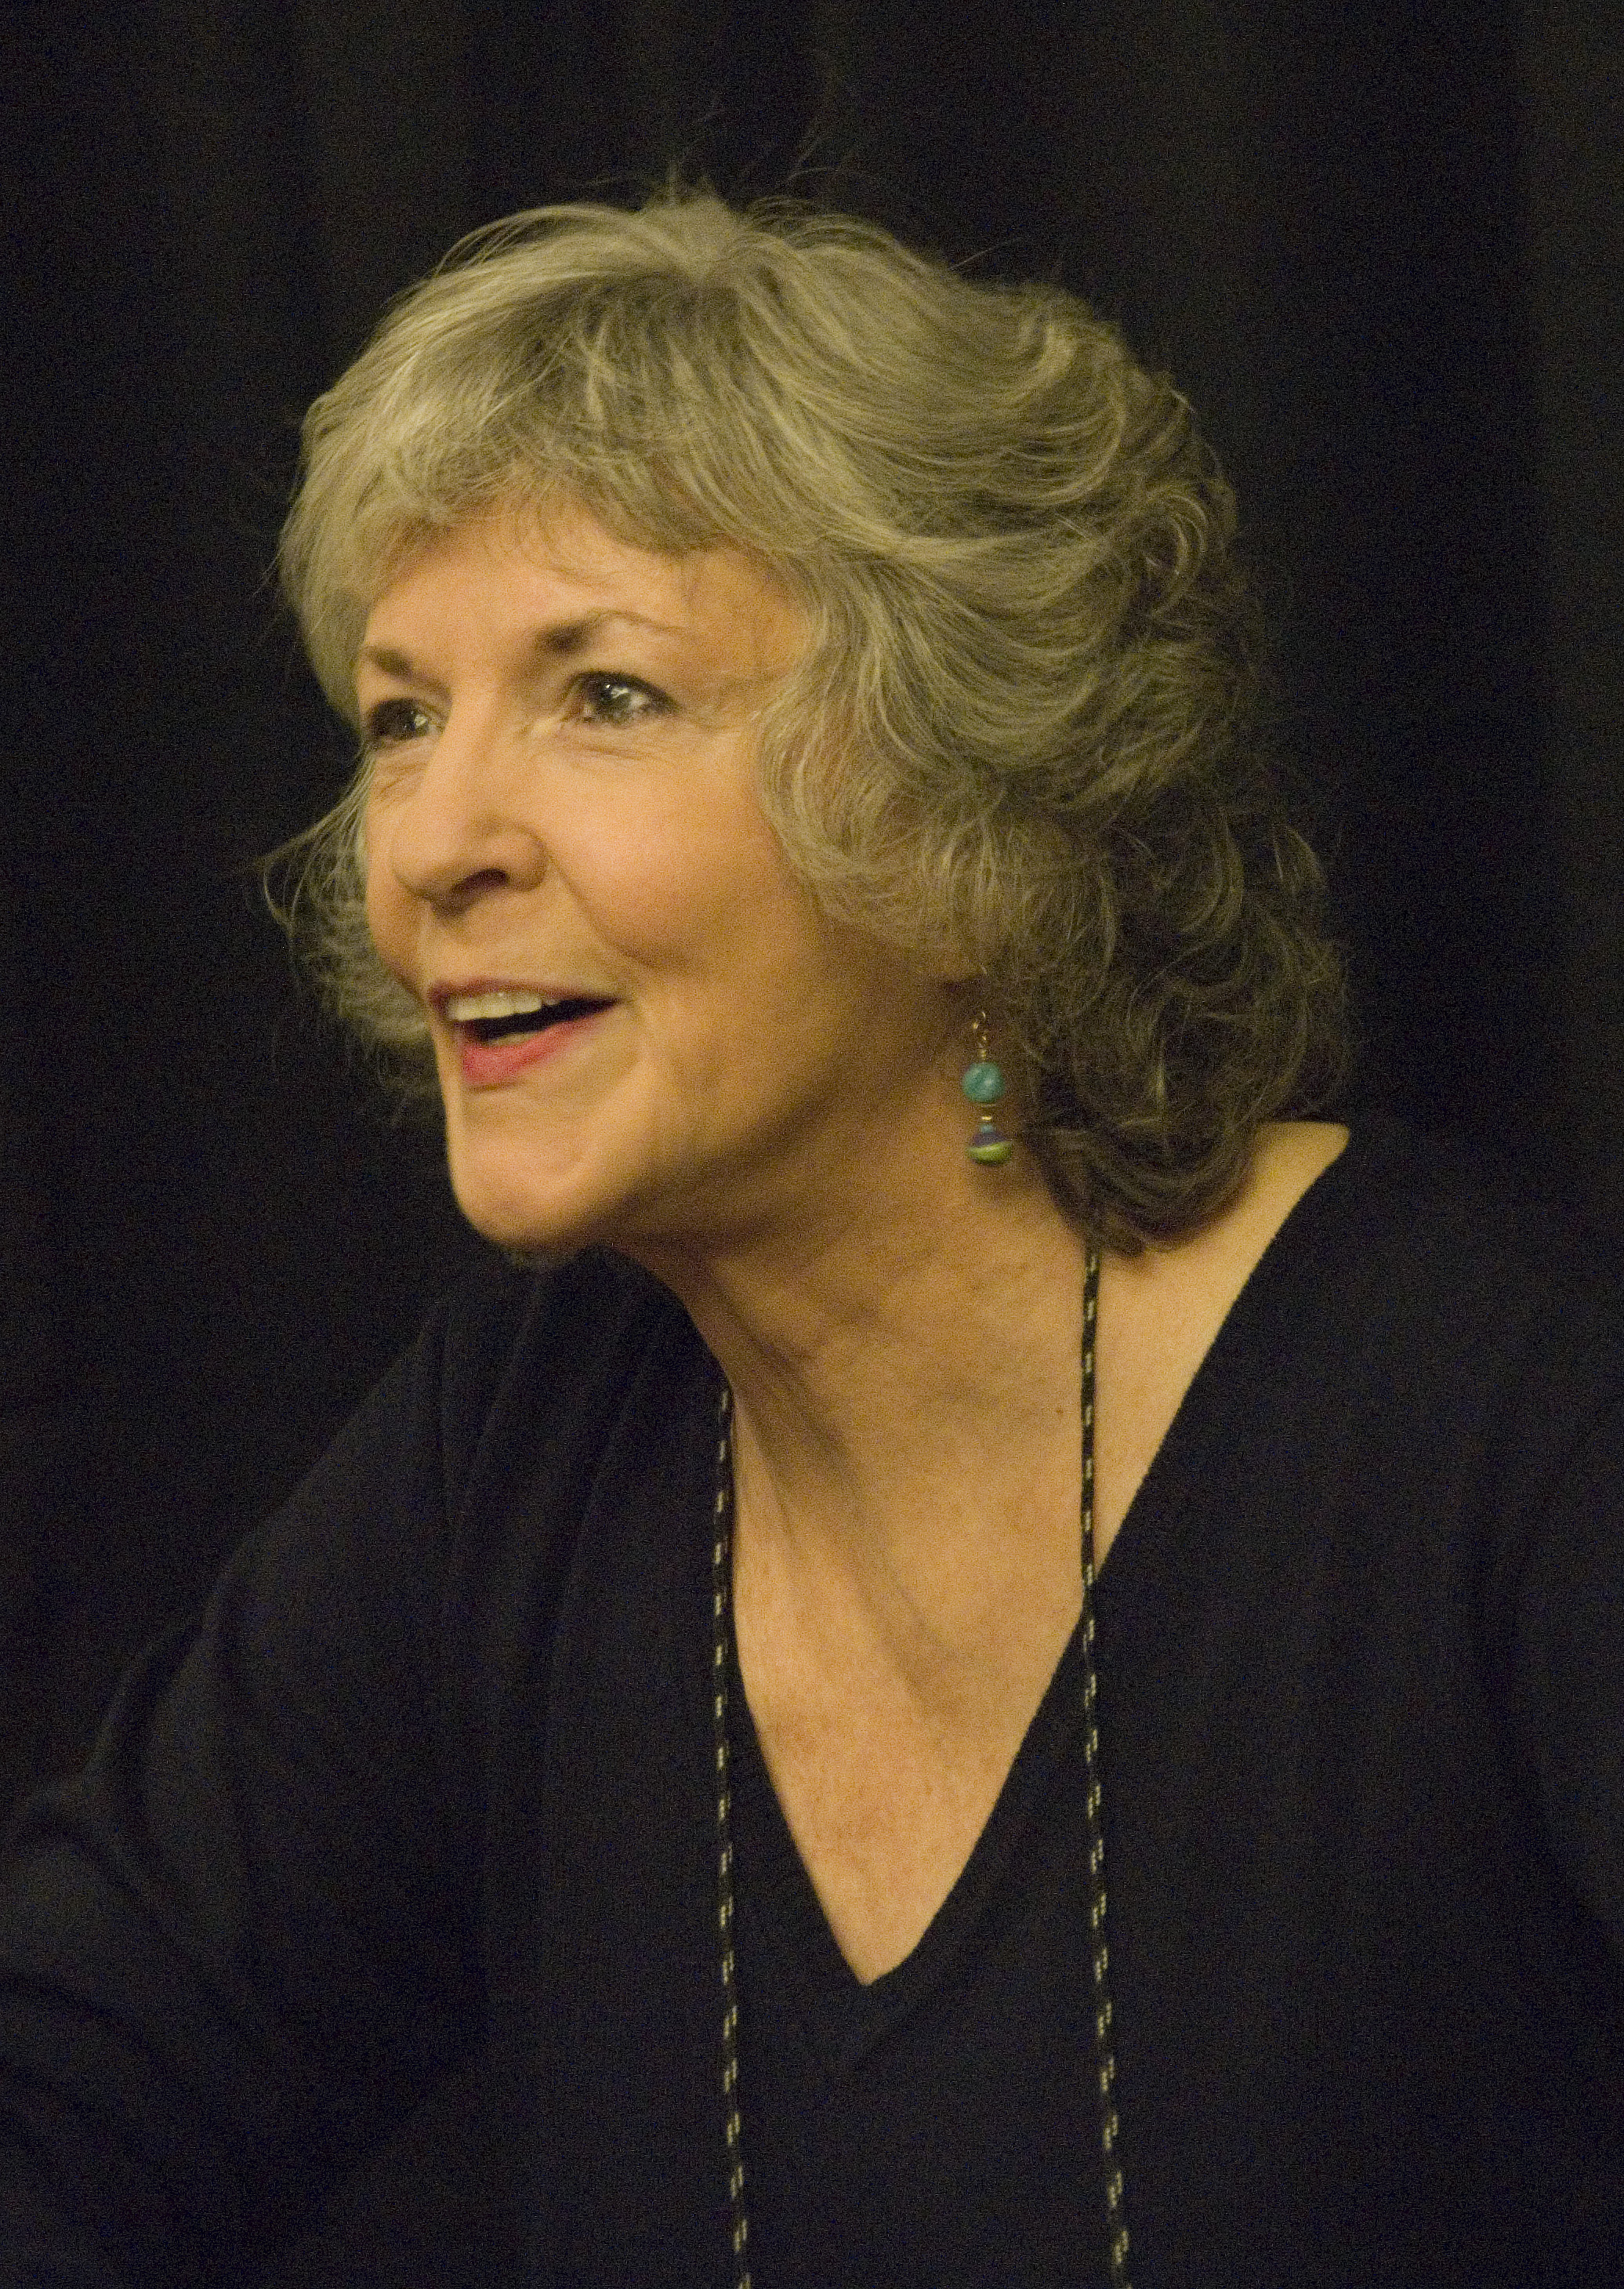 Sue Grafton at Bouchercon 2009 in Indianapolis...